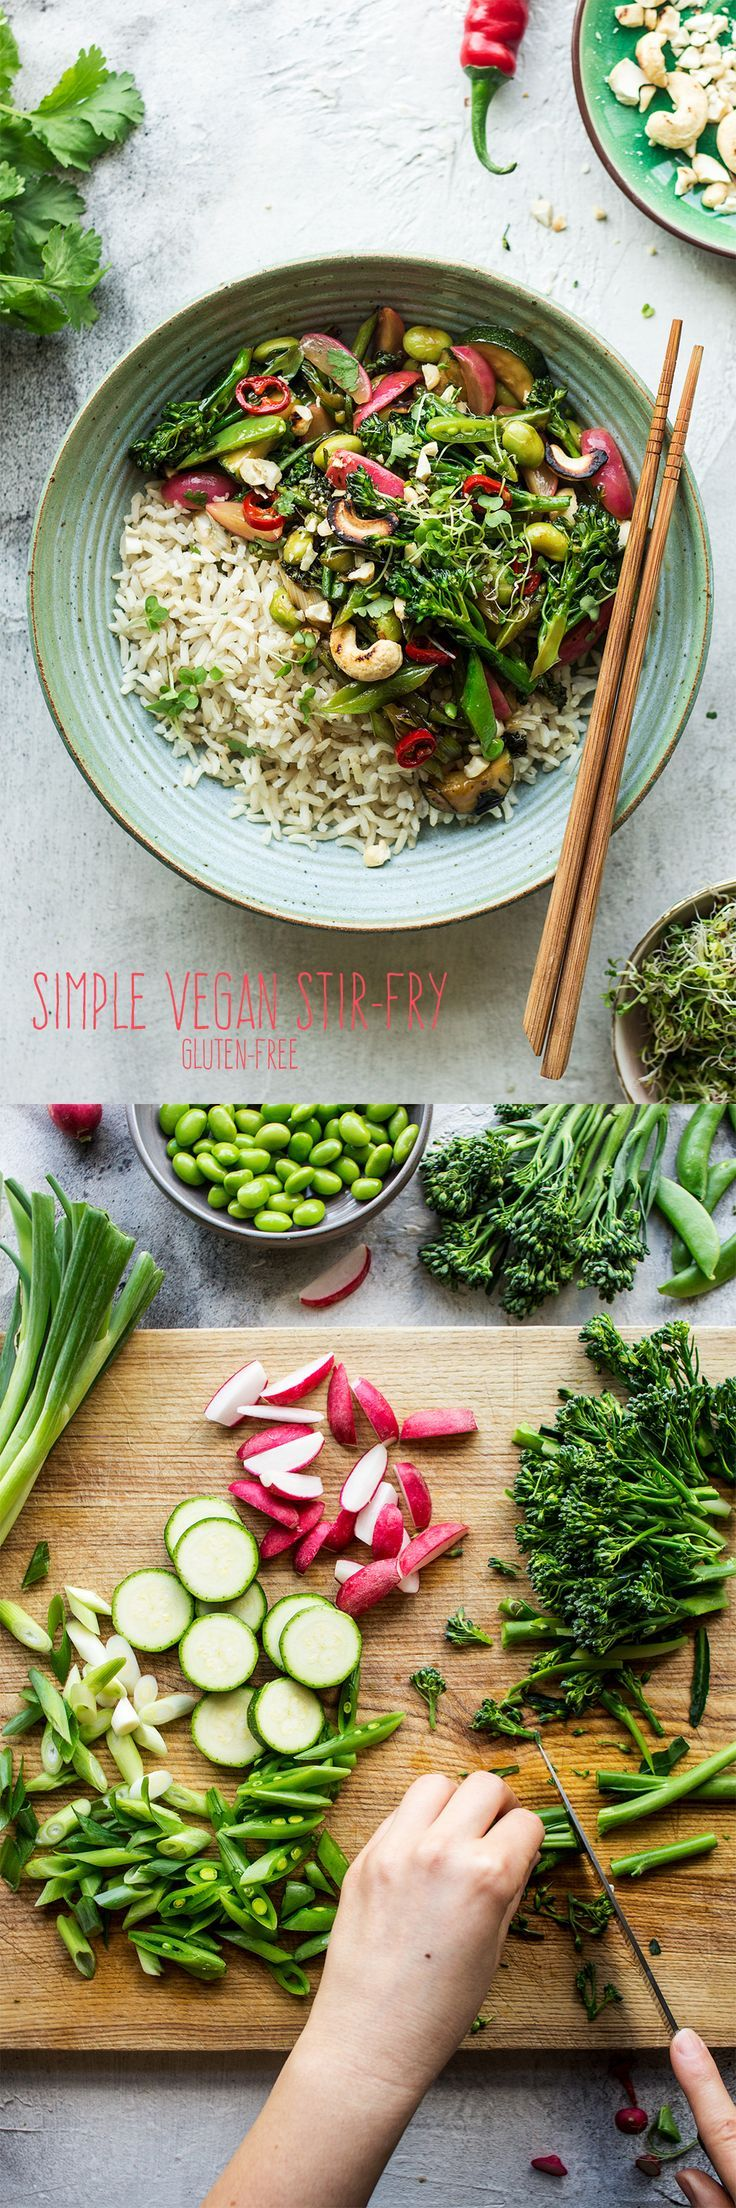 Vegan Recipes Spring